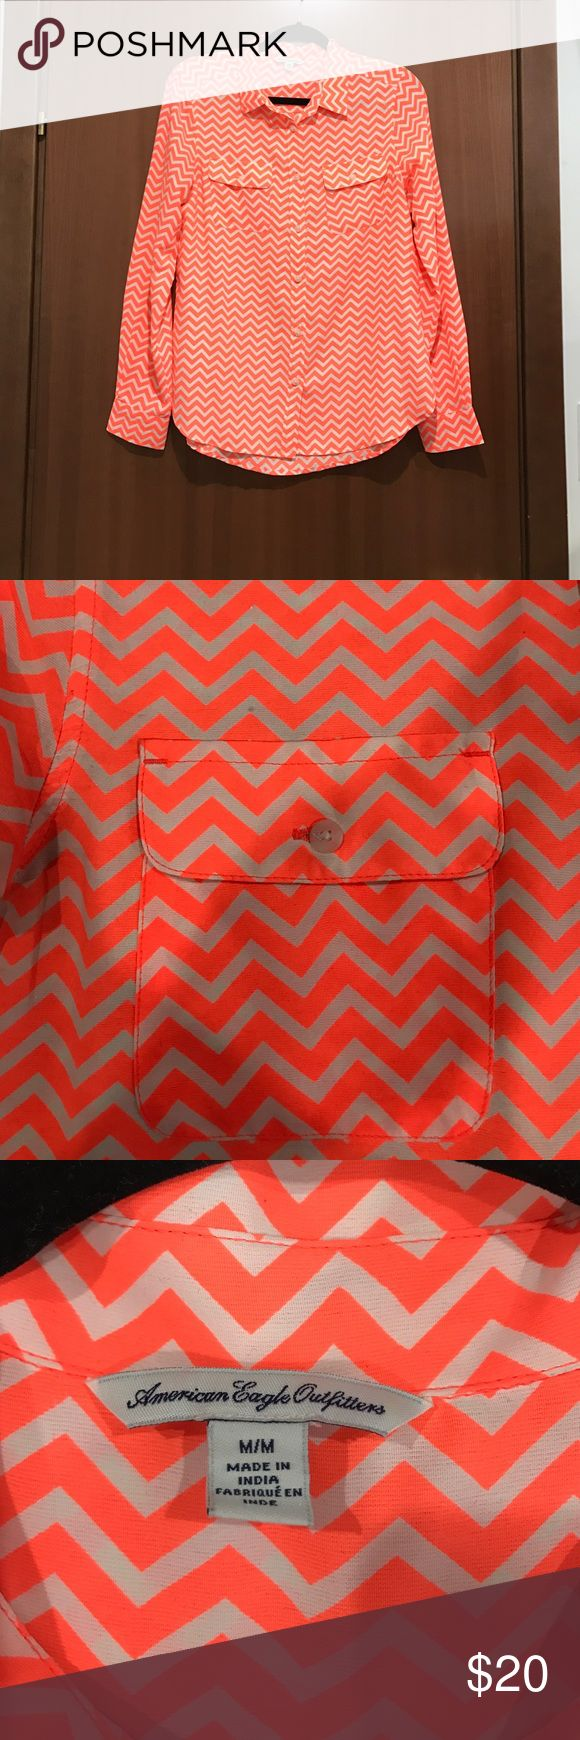 American Eagle chevron blouse This is an American Eagle bright orange and white chevron button down blouse. Size medium. Excellent condition, worn once. American Eagle Outfitters Tops Button Down Shirts